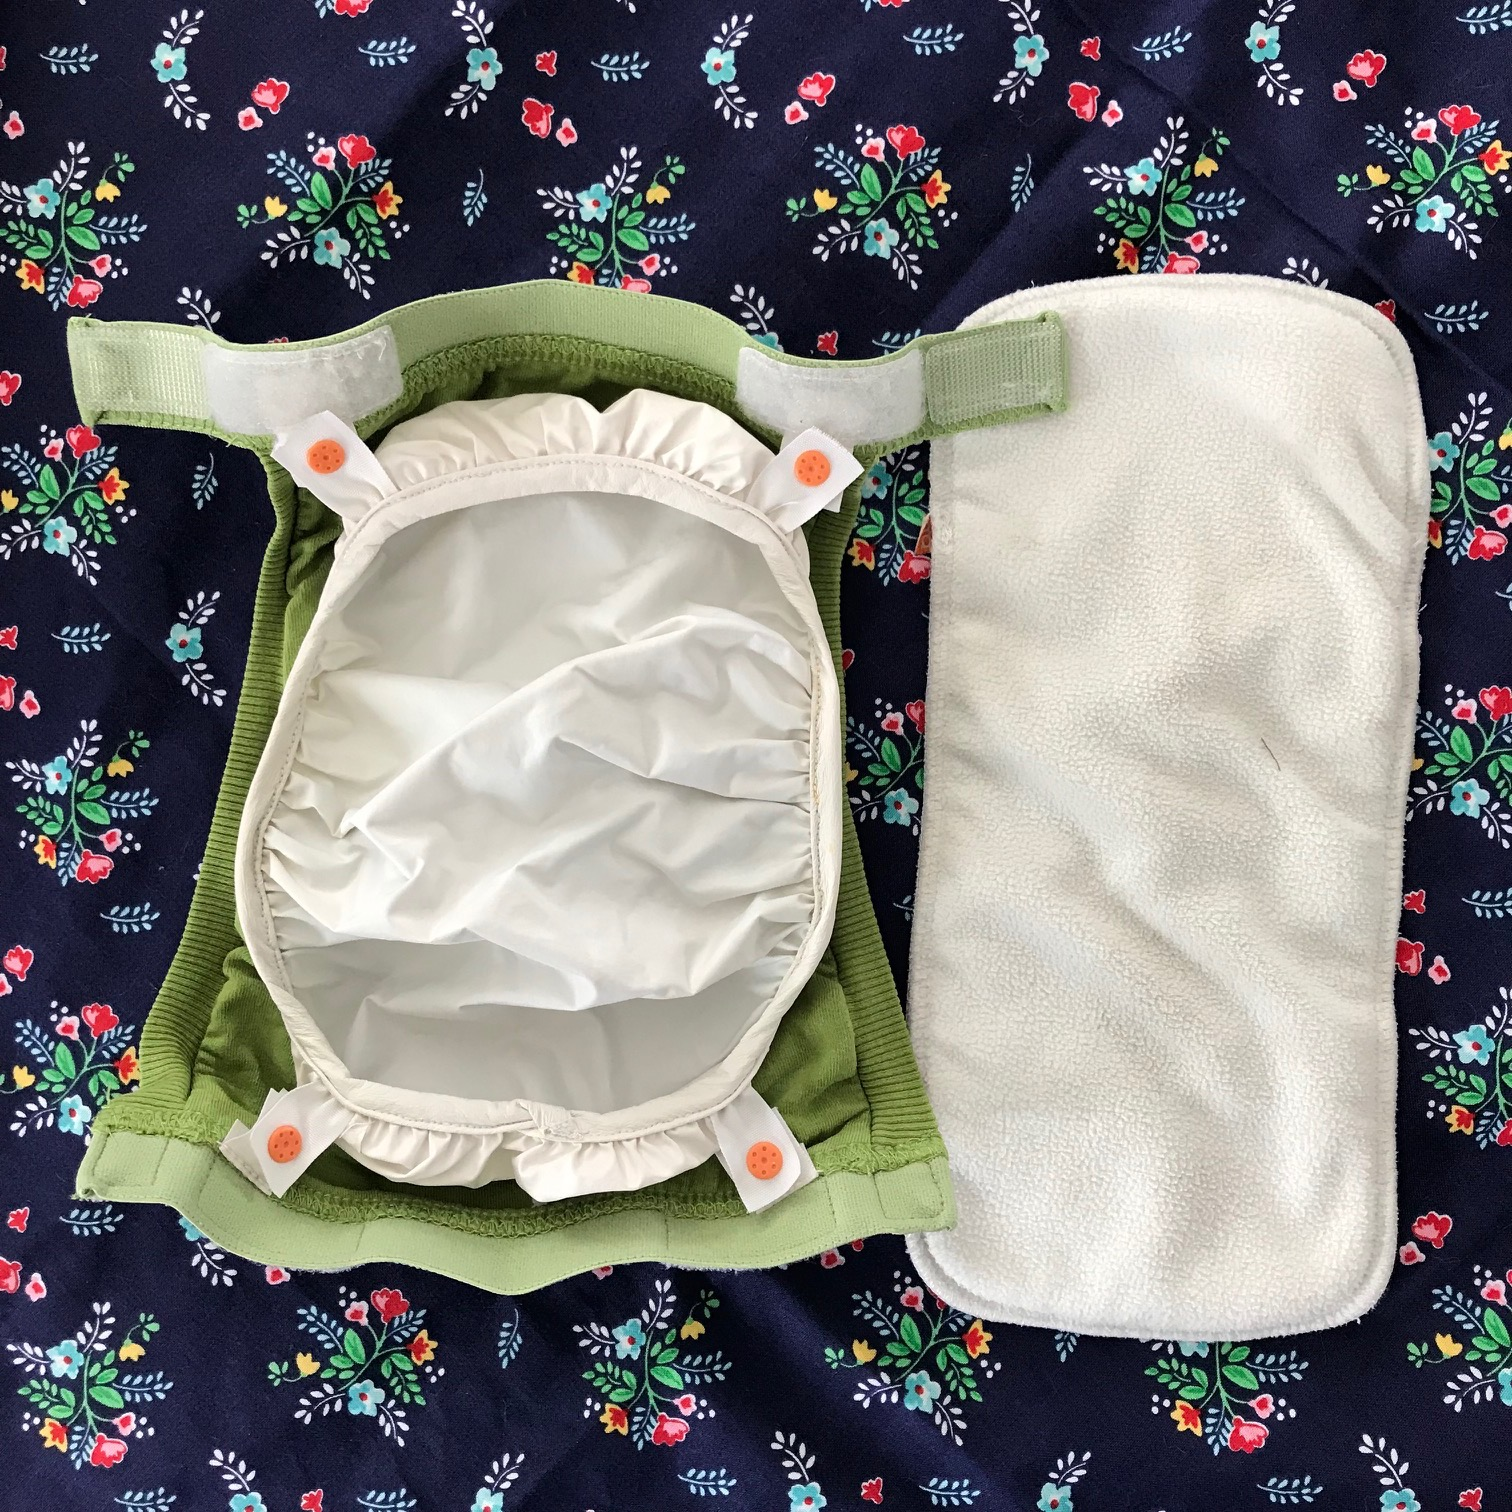 The  gDiaper  cage and a  gDiaper  insert that we got second hand. Reduce REUSE recycle!